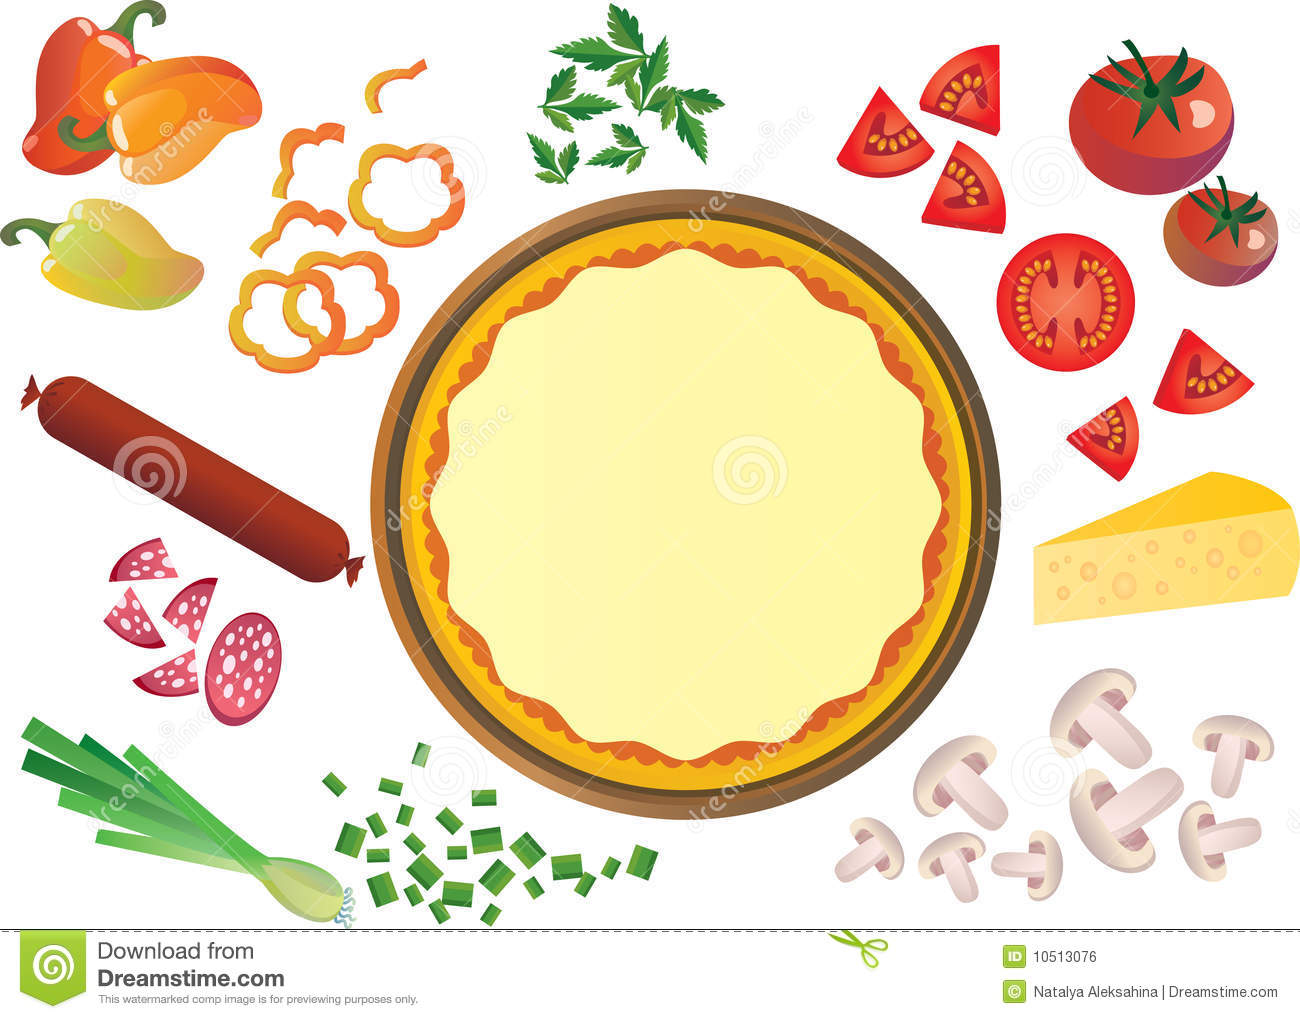 Mushroom clipart topping Cliparts Pizza Ingredients Ingredients Clipart